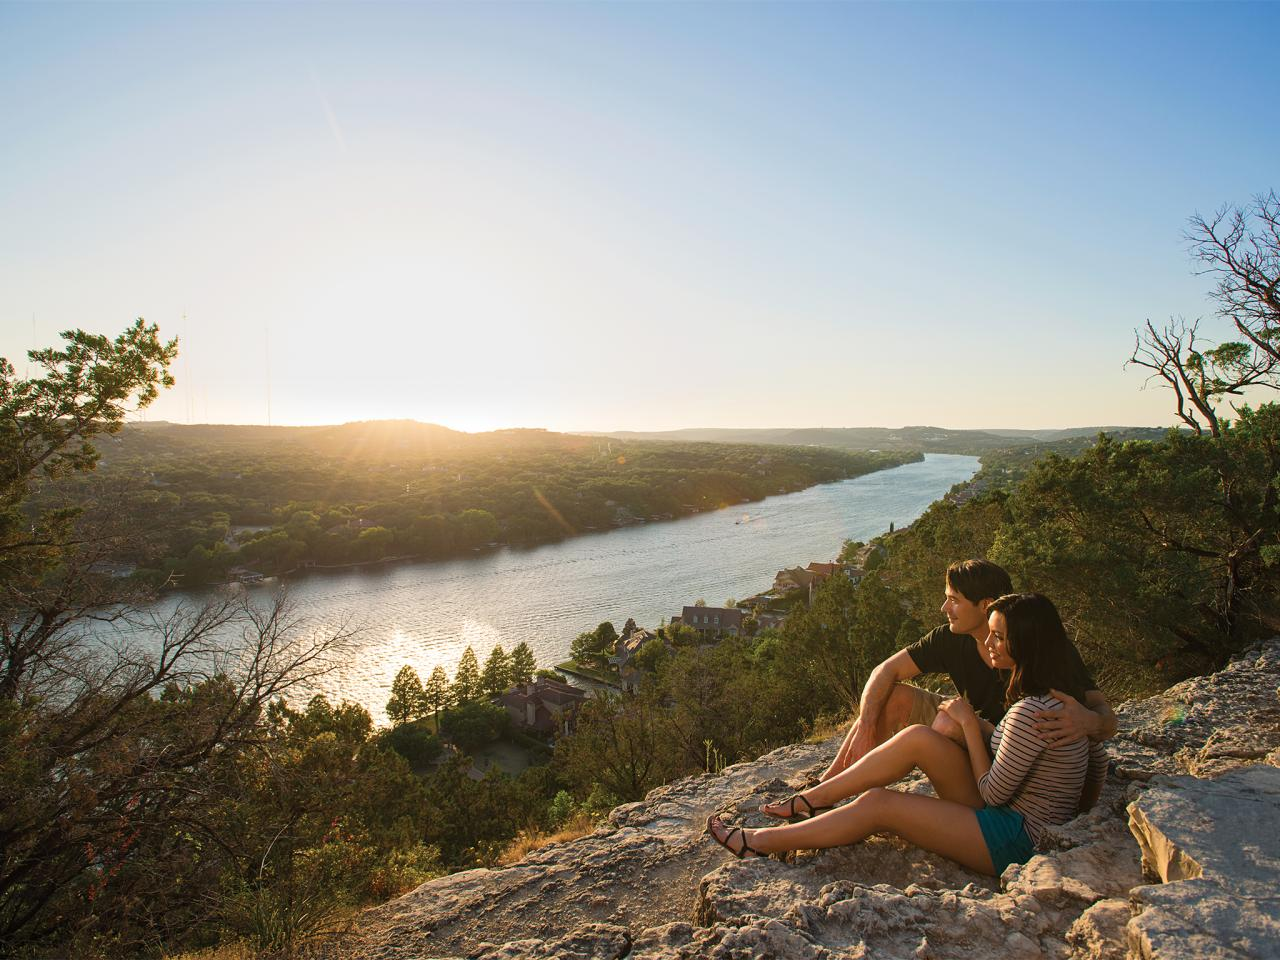 The best neighborhoods in Austin, Tx for the recently divorced. There is a purchase to fit every budget during these hard, or relieving, times.